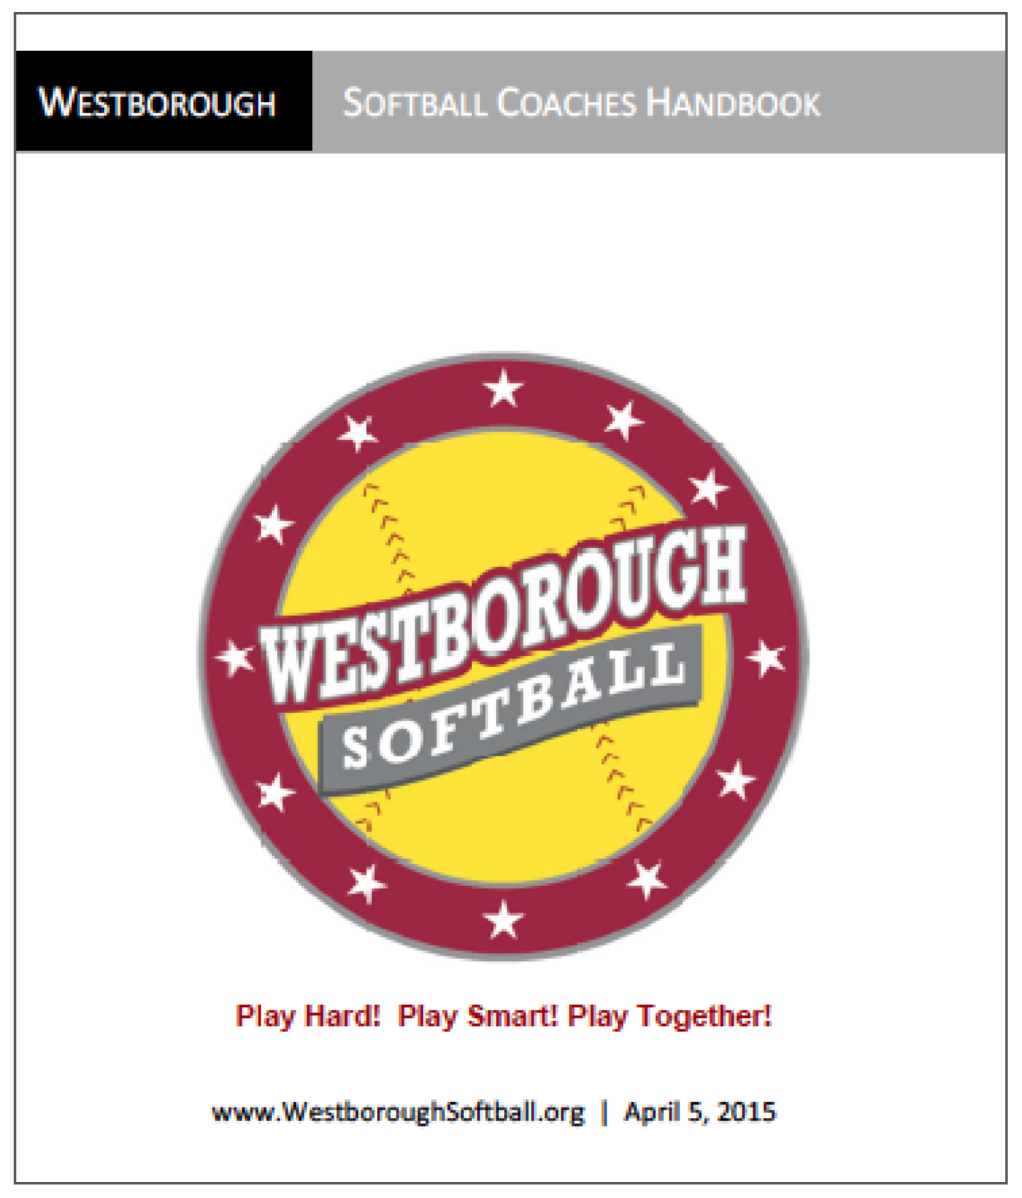 Westborough Softball Coaches Handbook